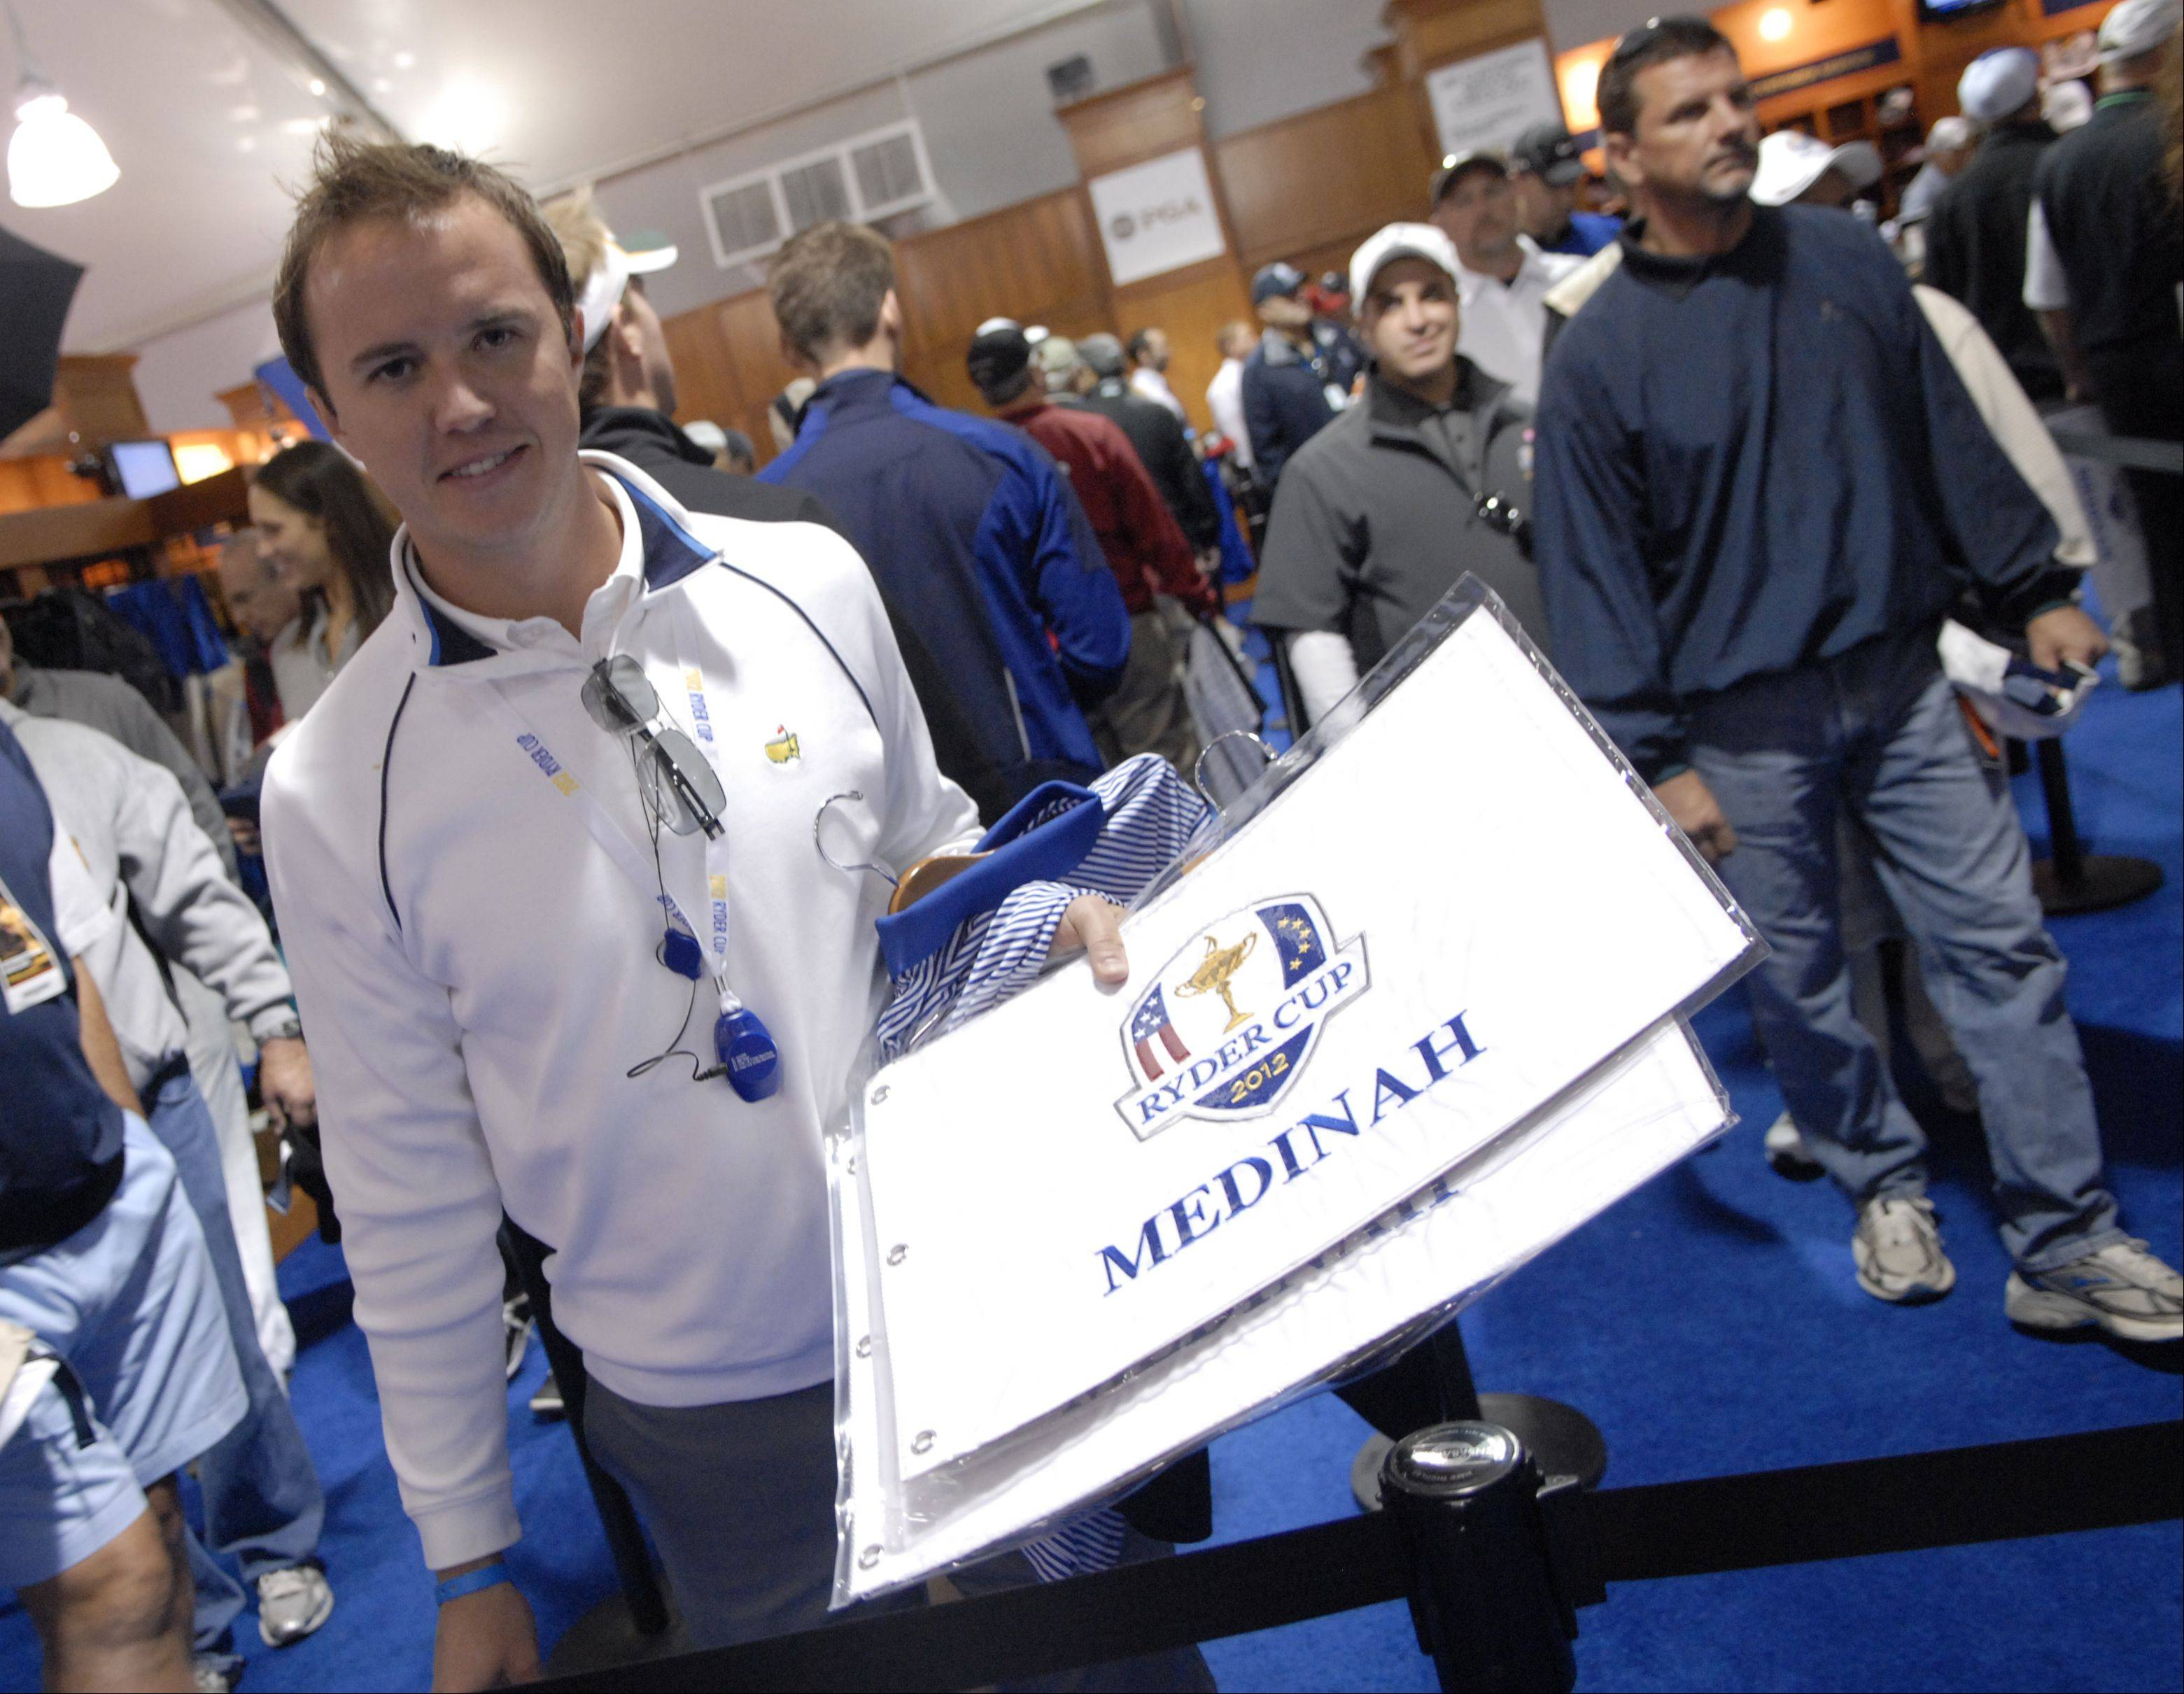 Dan Scalia of Chicago bought roughly $200 of Ryder Cup merchandise Friday for clients, family and himself.